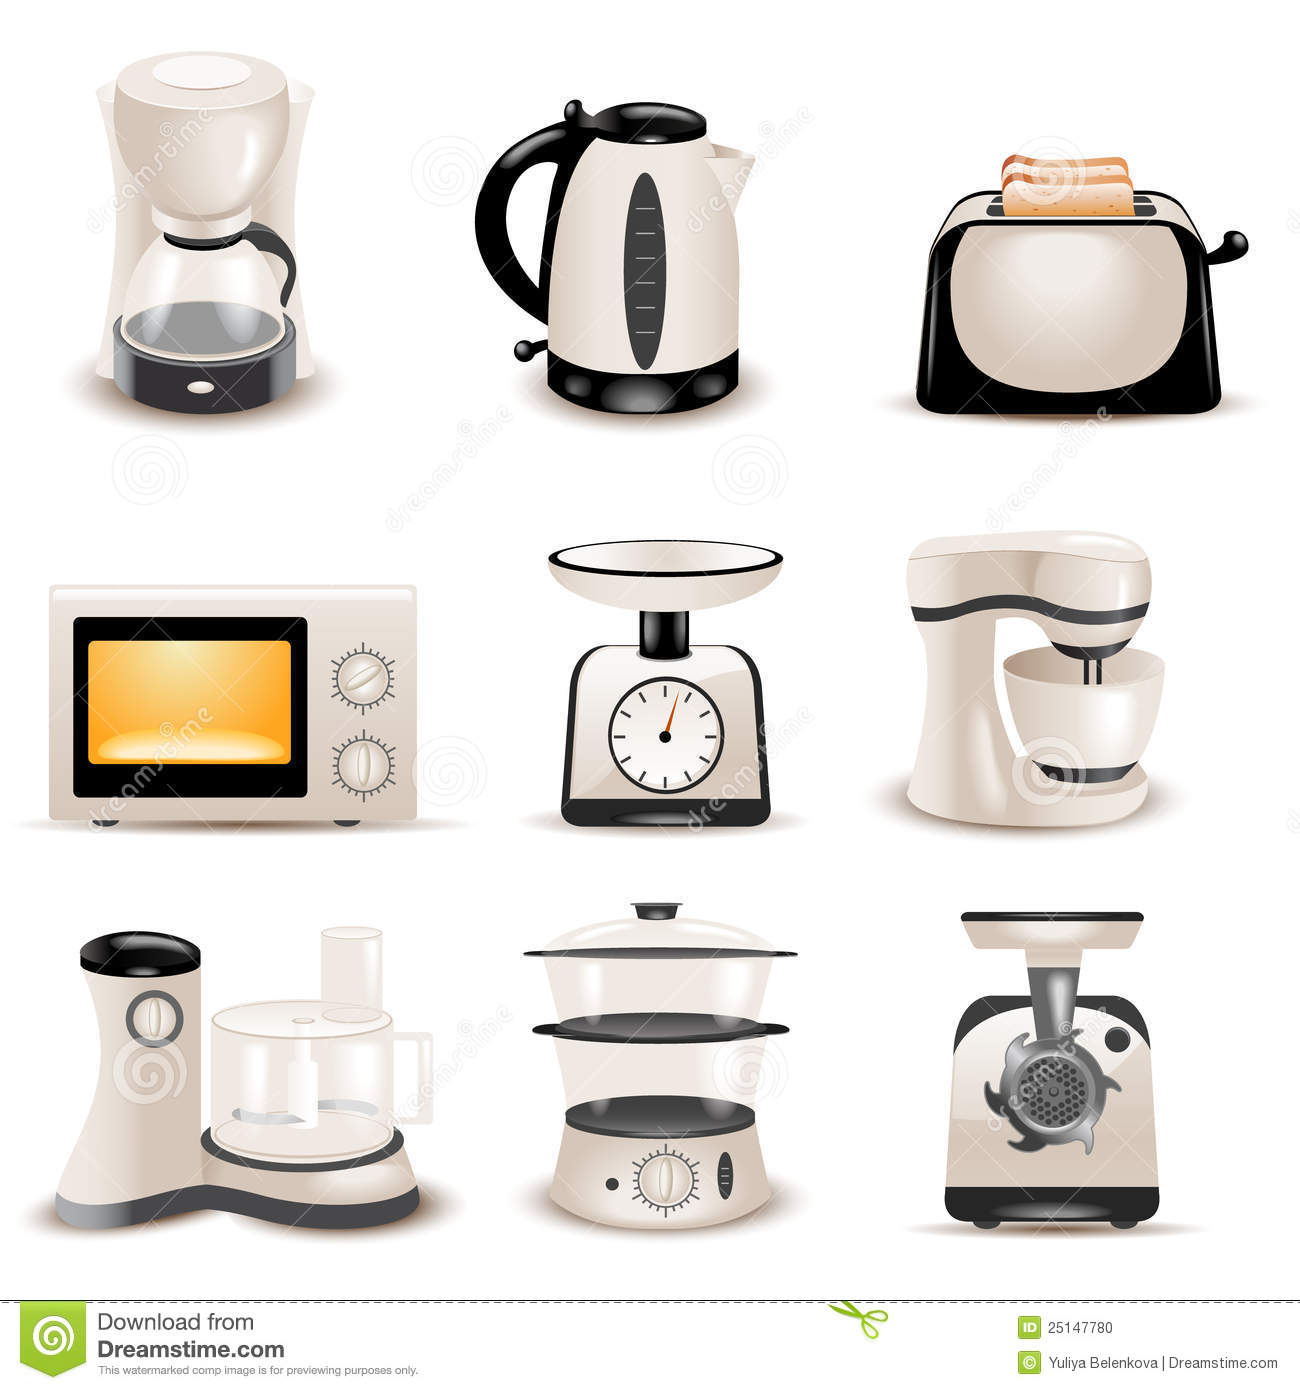 kitchen appliances stock photo - image: 25147780